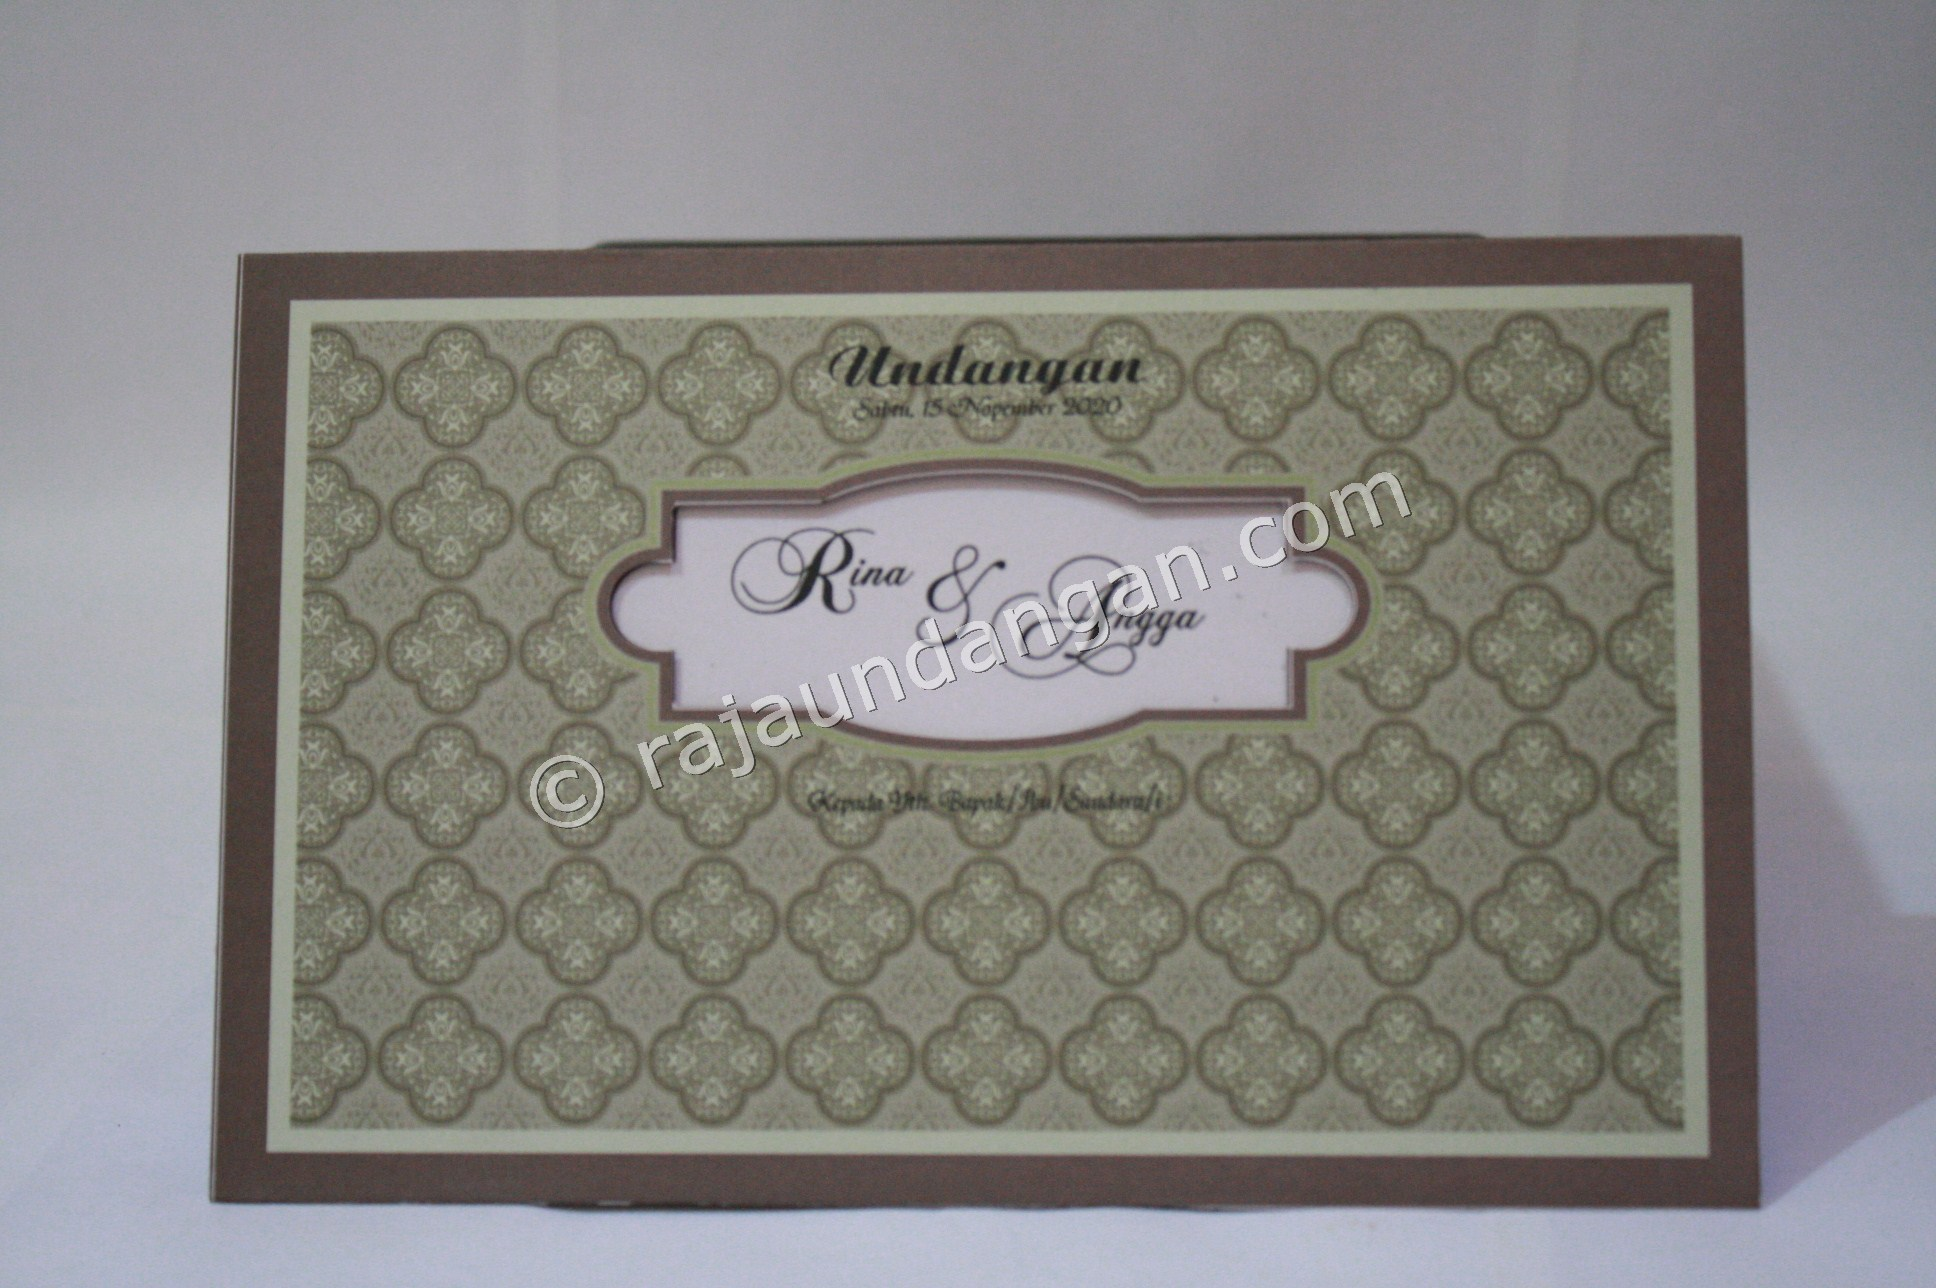 Undangan Pernikahan Softcover Lia dan Doni 1 - Tips Mencetak Wedding Invitations Simple